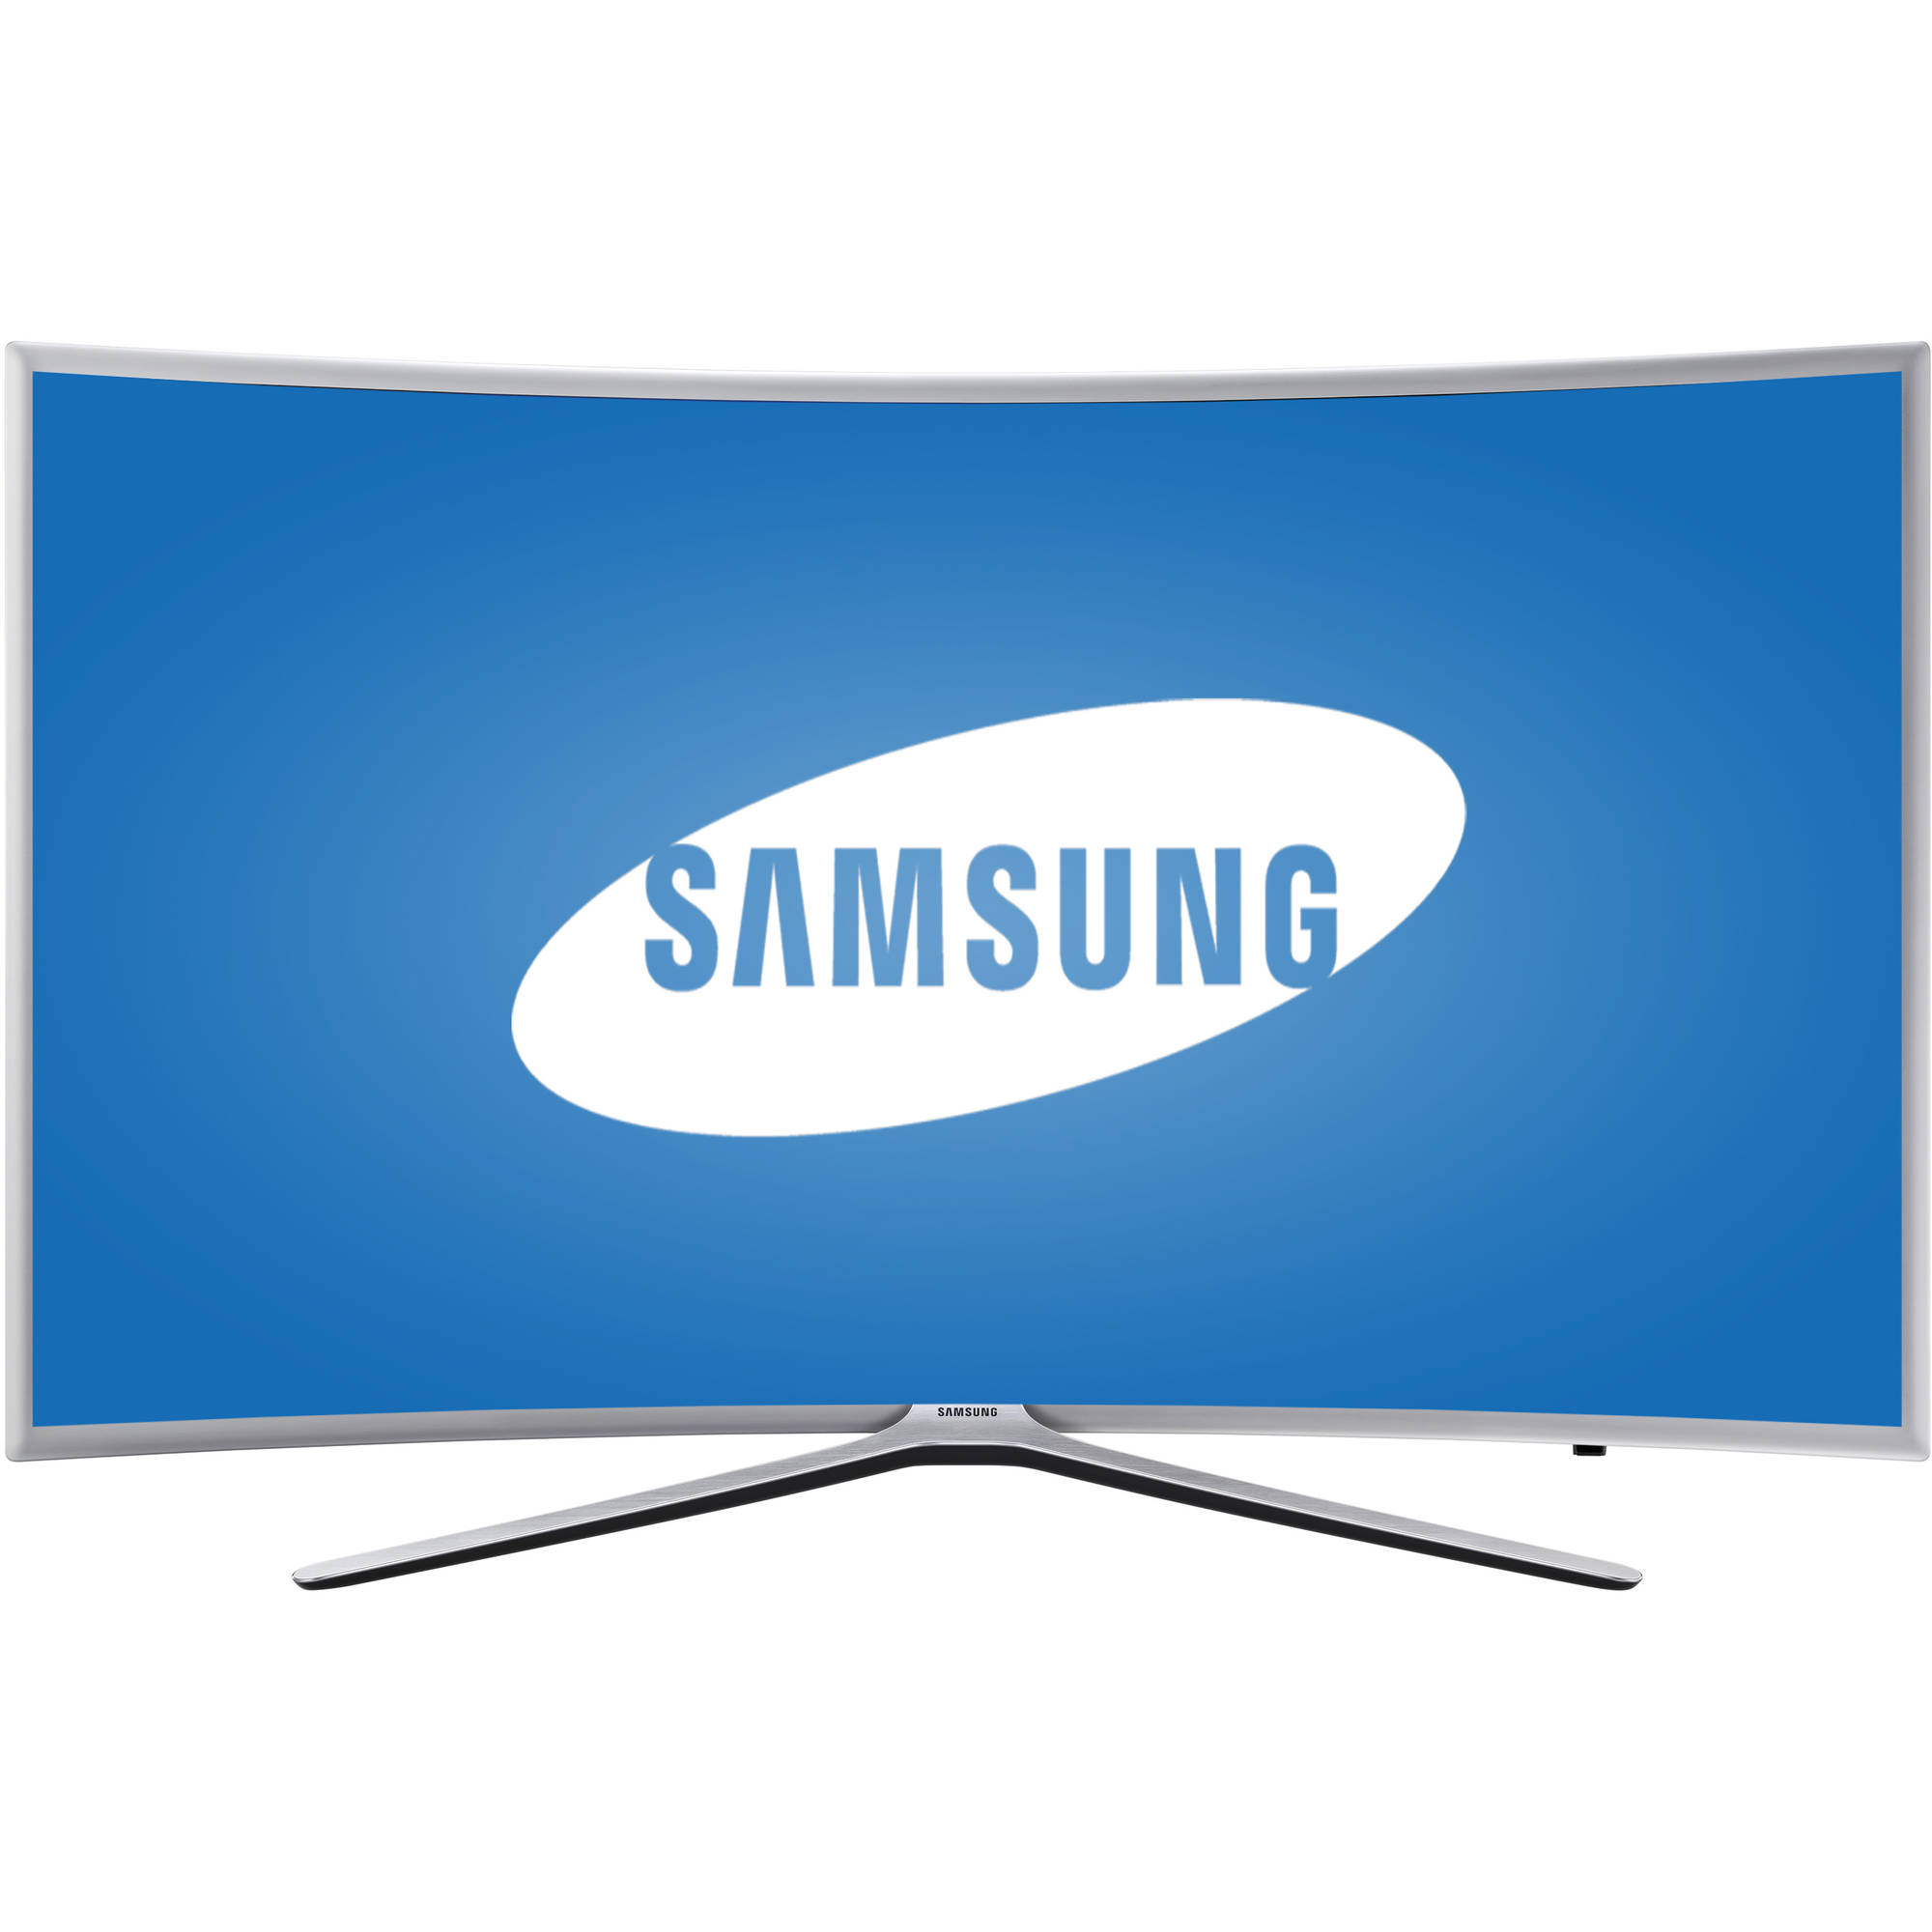 "SAMSUNG  40"" 6200 Series- Curved LED Smart HD TV-1080p, 60Hz (Model#:UN40K6250)"